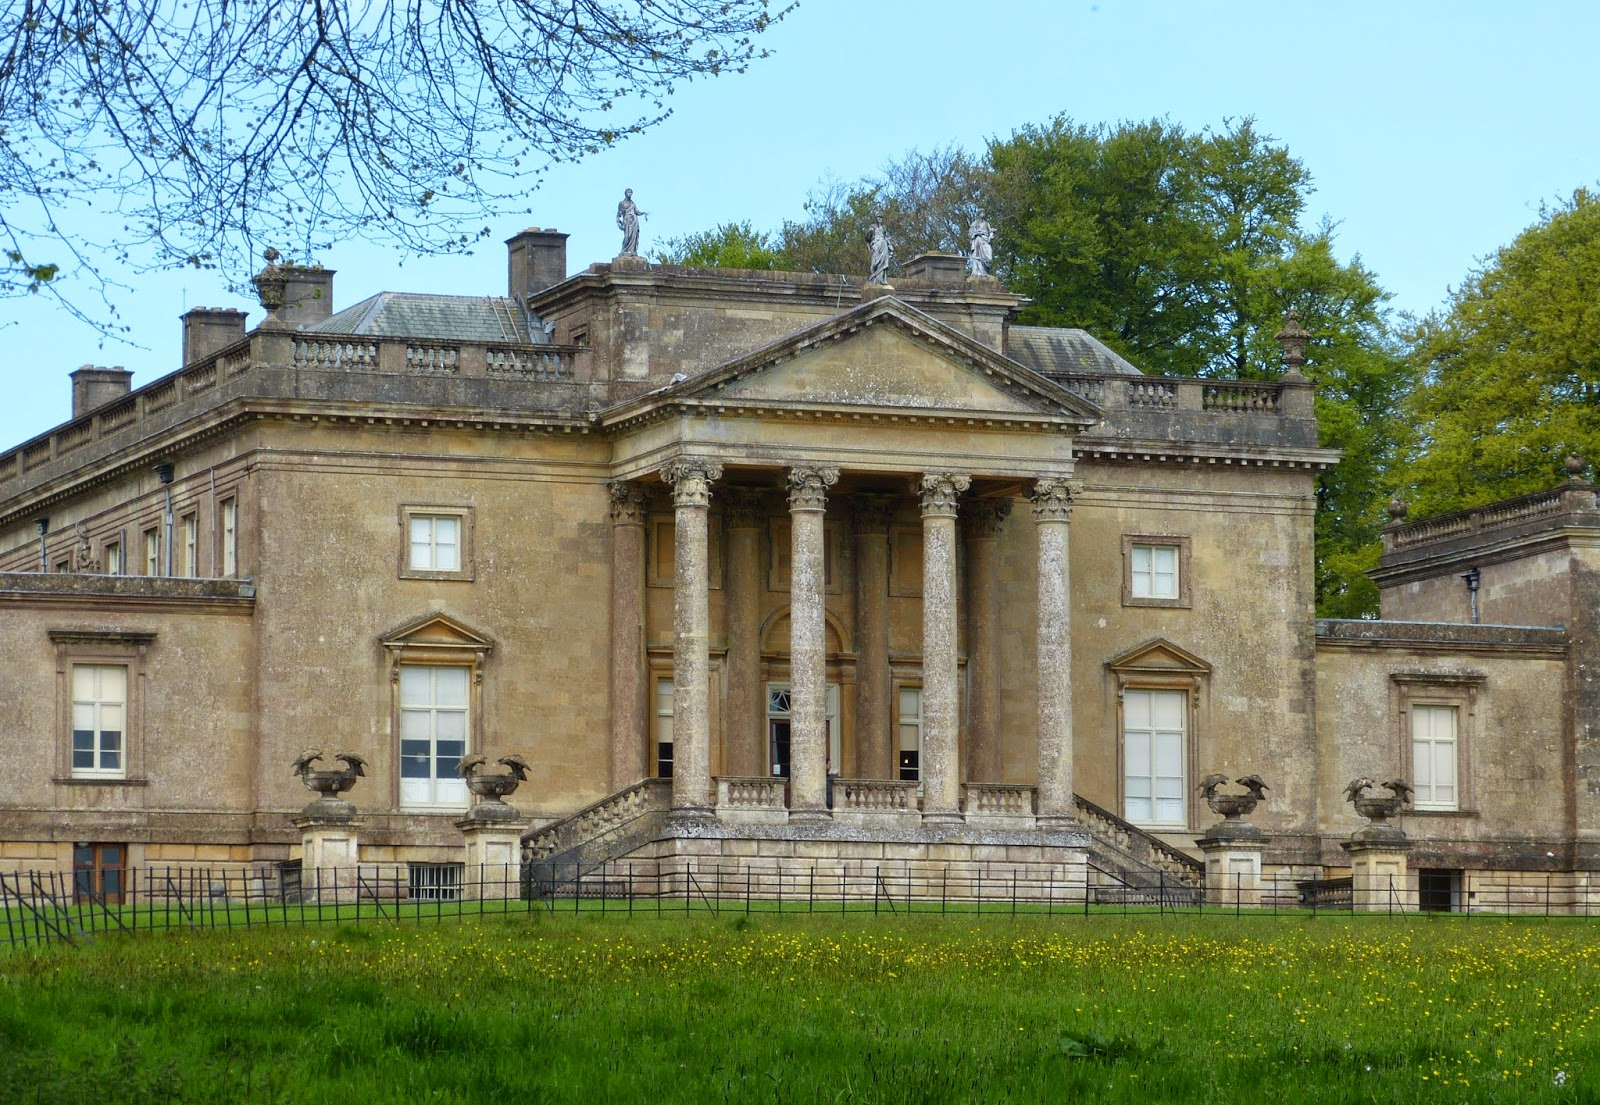 The Palladian exterior of Stourhead